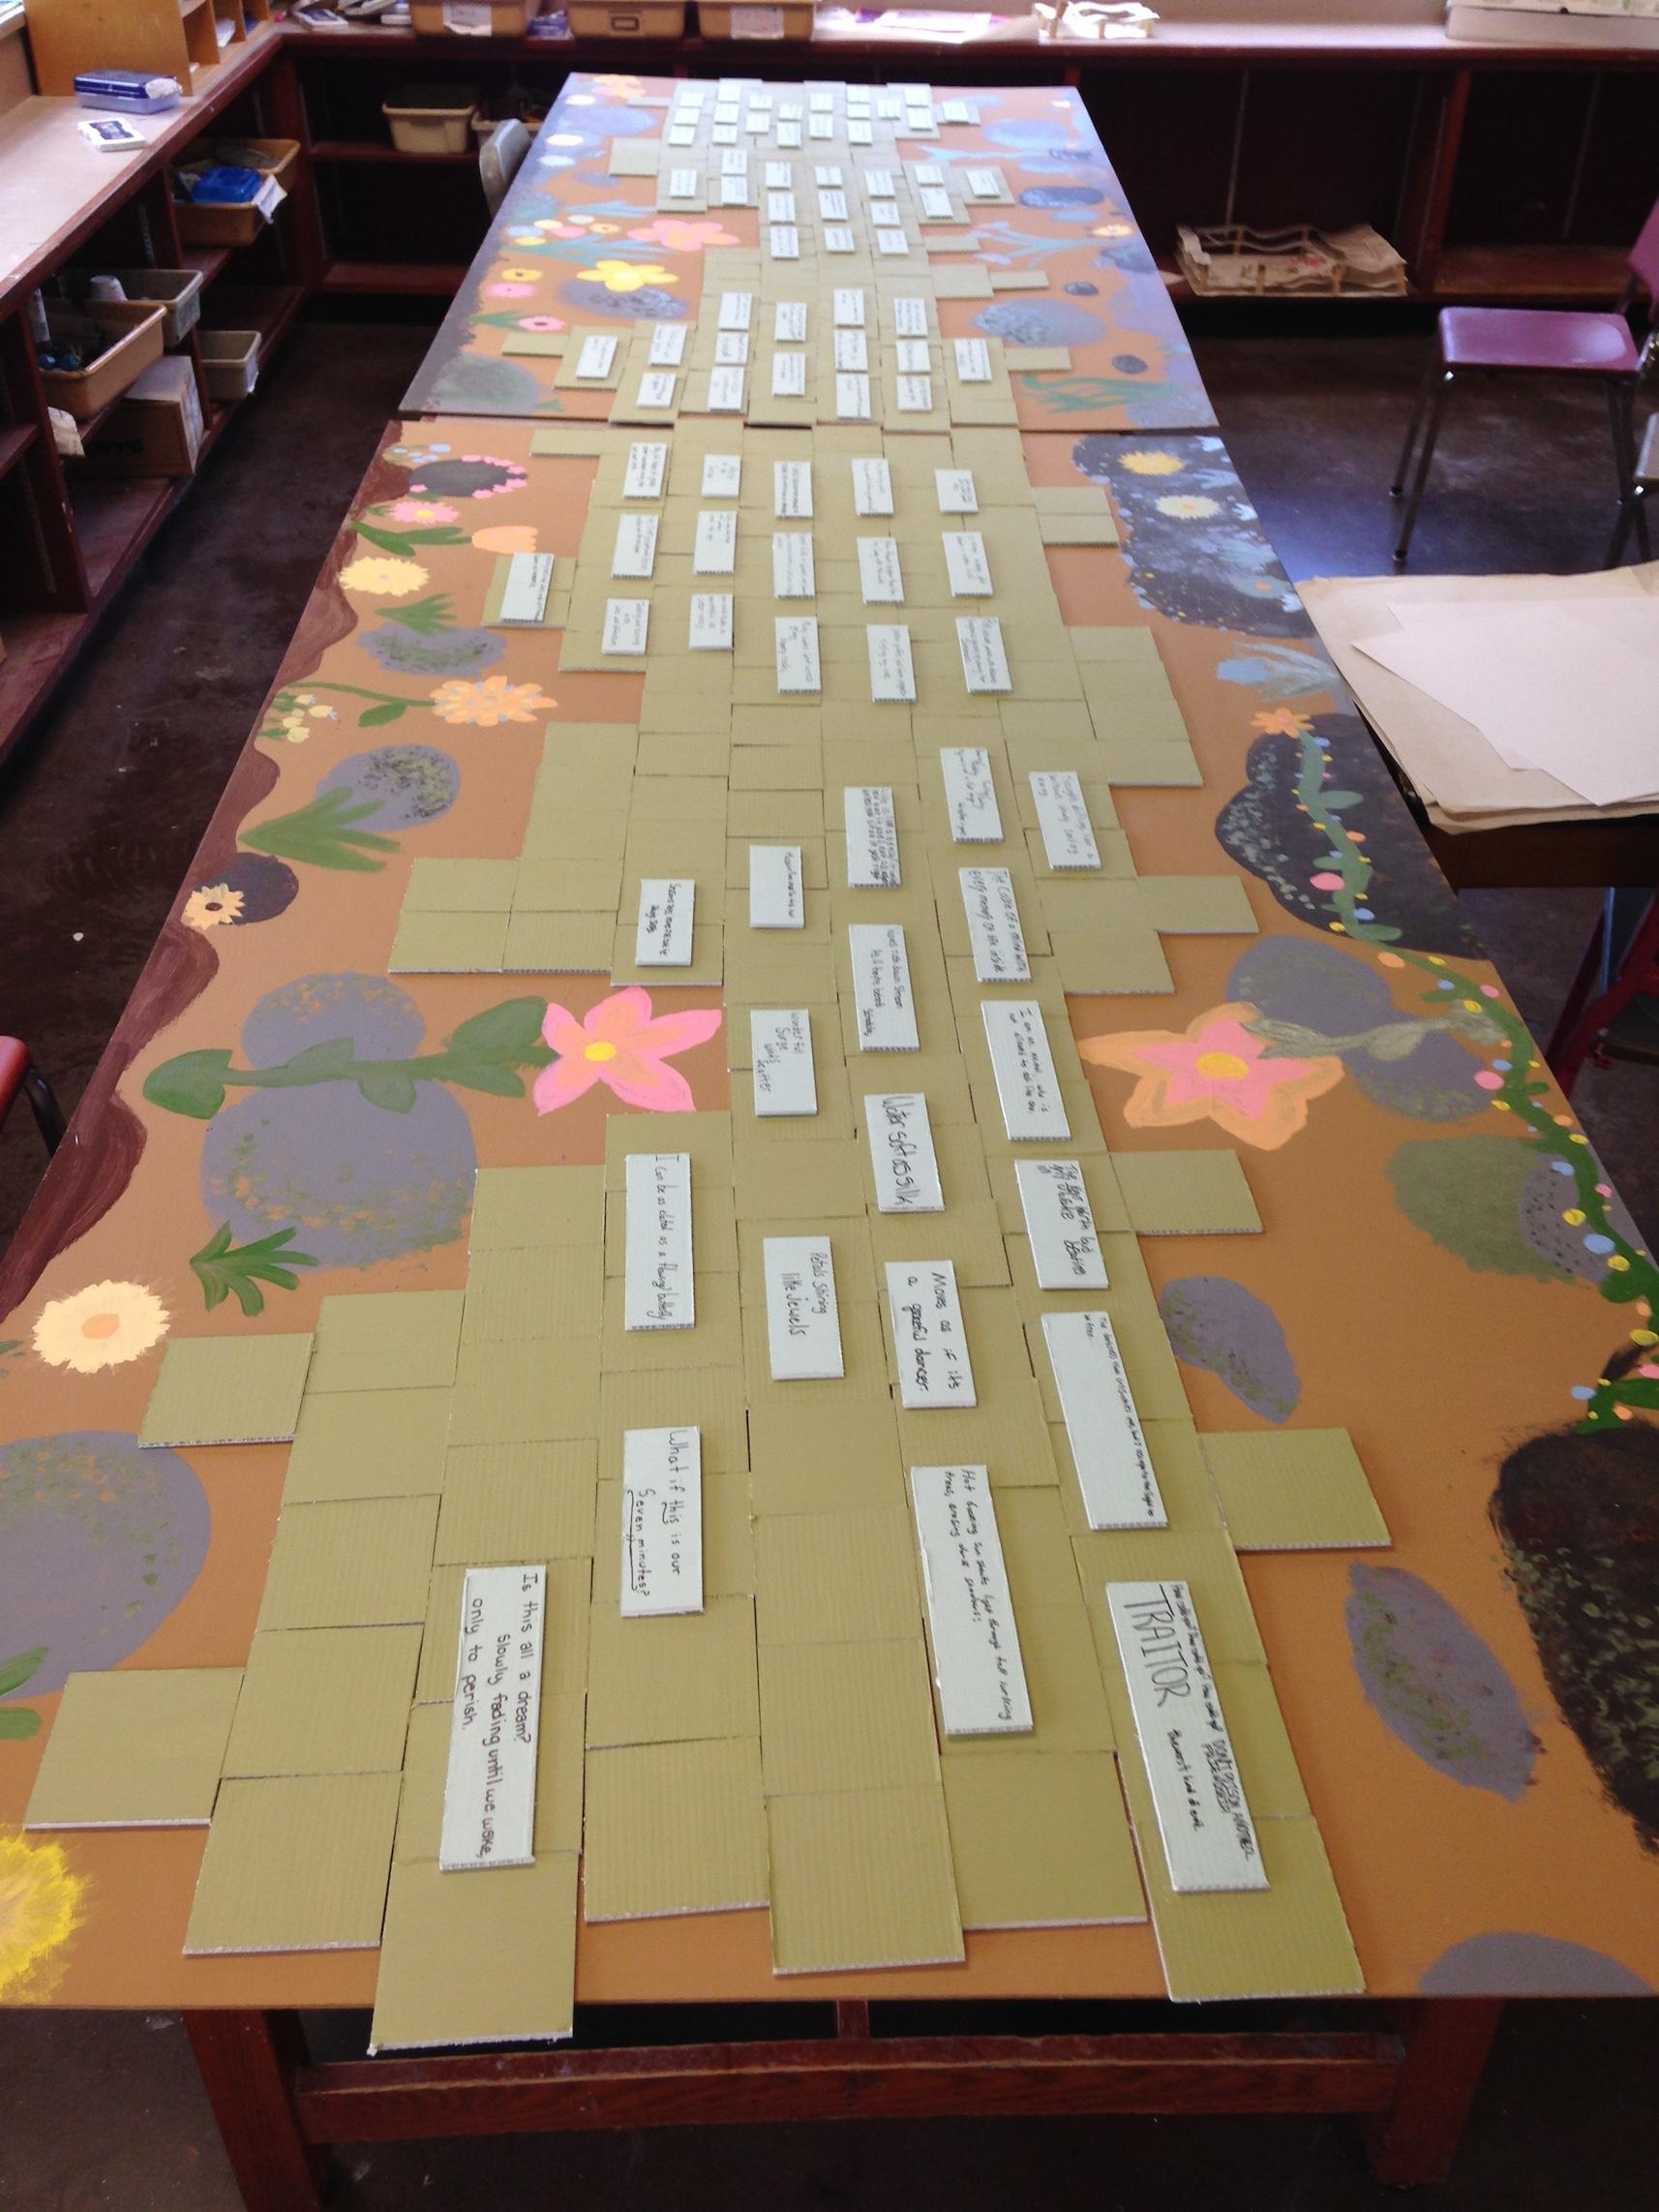 Mural of art and poetry, designed by students using the Watershed Explorer Curriculum